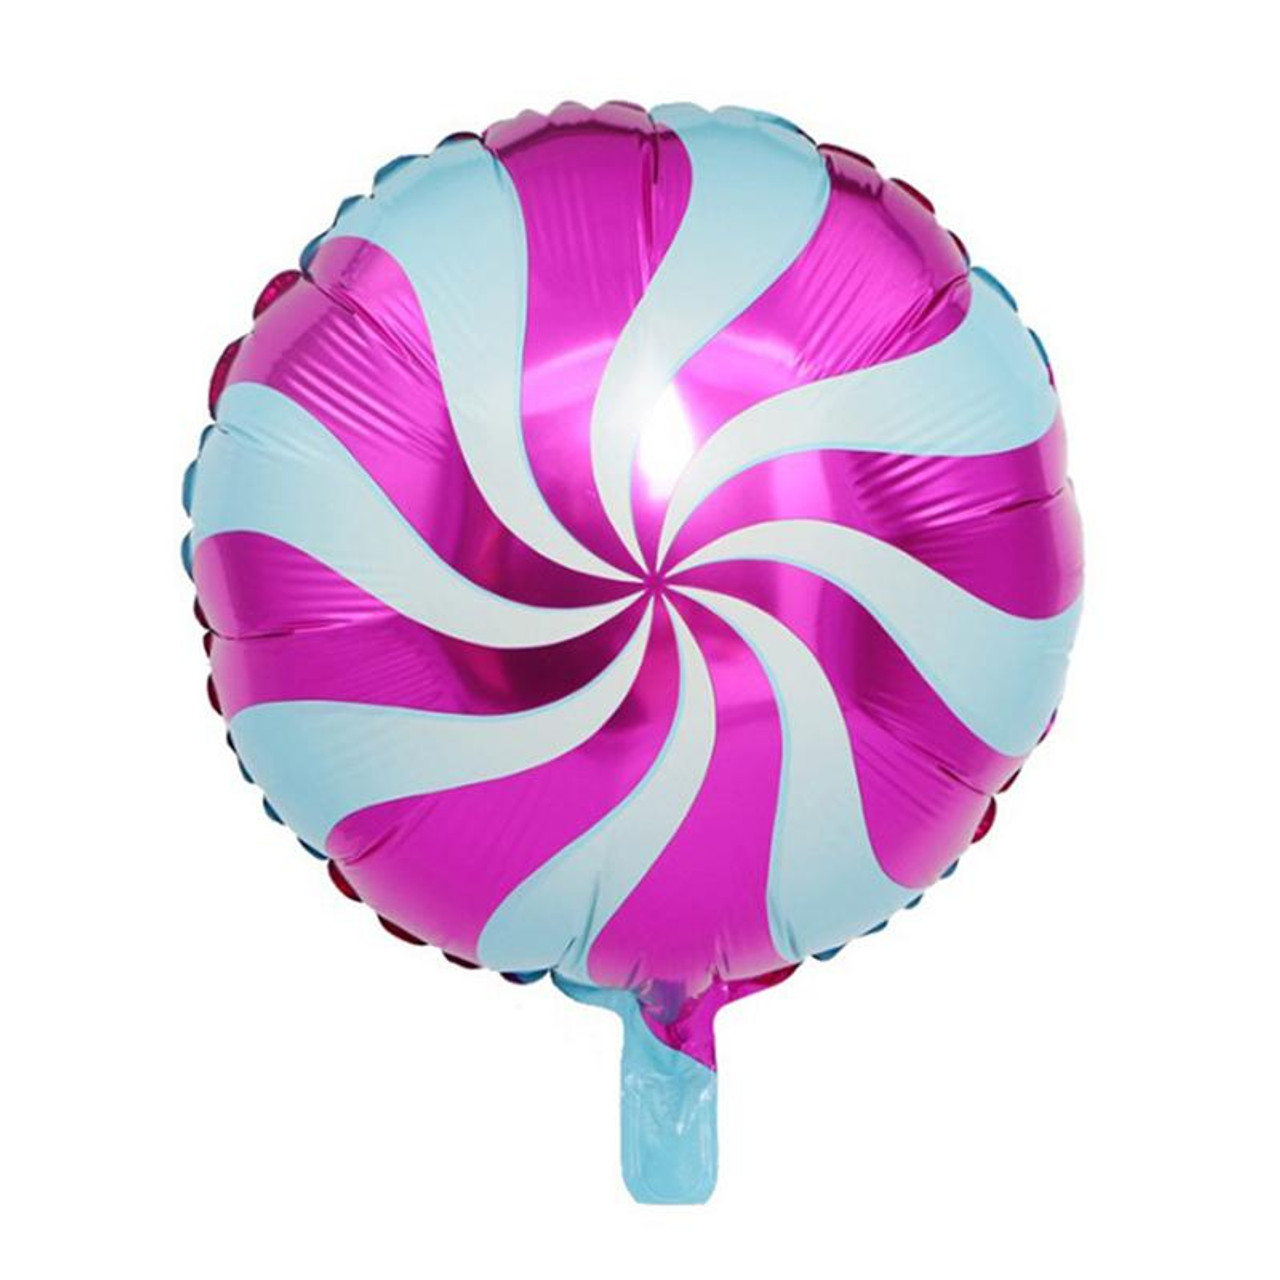 24 Pcs 18 Inch Colorful Lollipop Hats Candy Hat Helium For Wedding Birthday Party